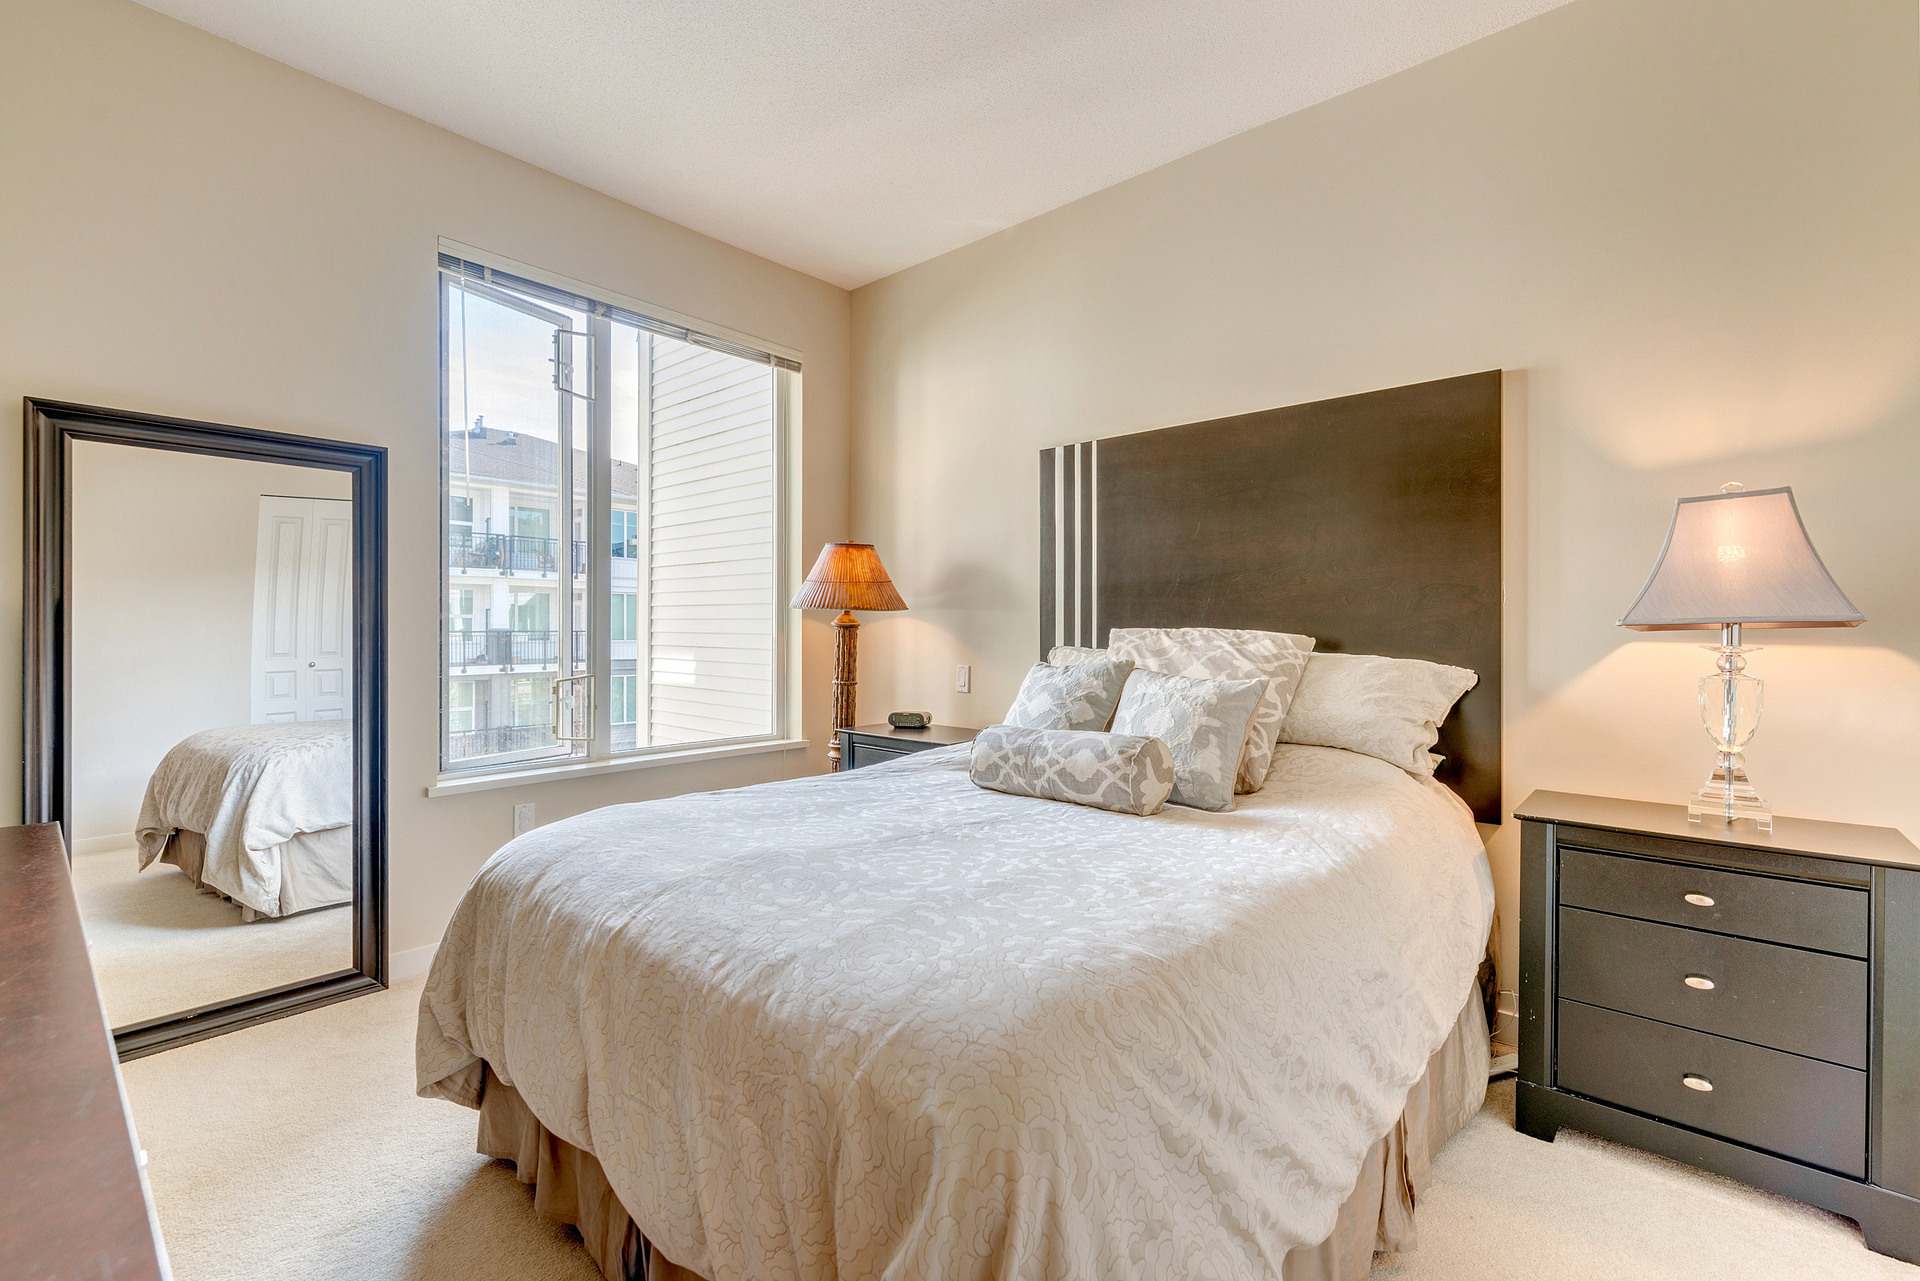 39475_15 at 337 - 9388 Mckim Way, West Cambie, Richmond